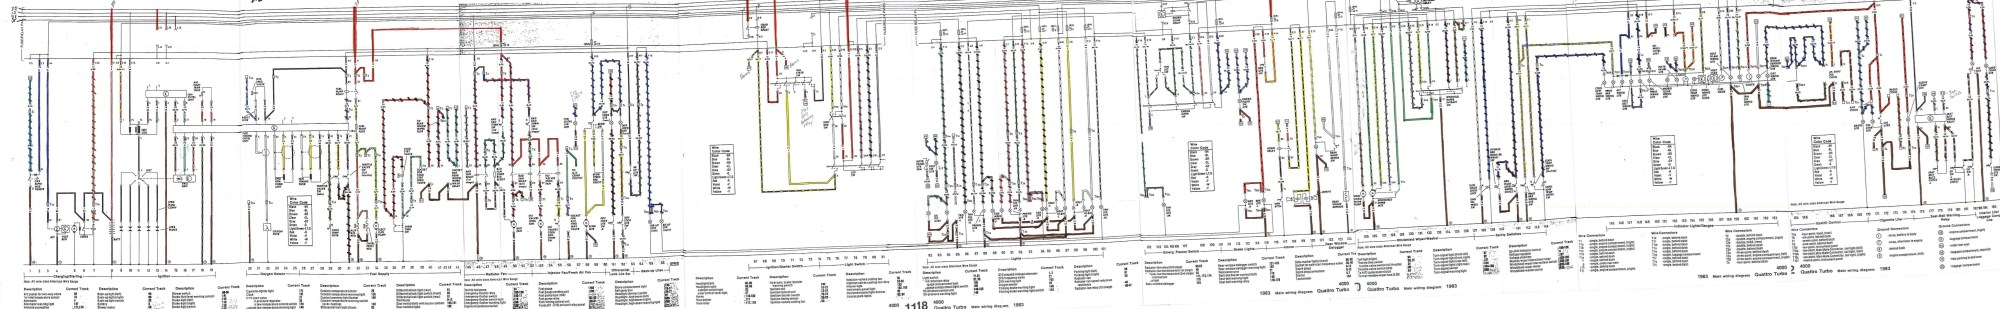 hight resolution of 1983 urquattro colored wiring diagram courtesy of jon layne